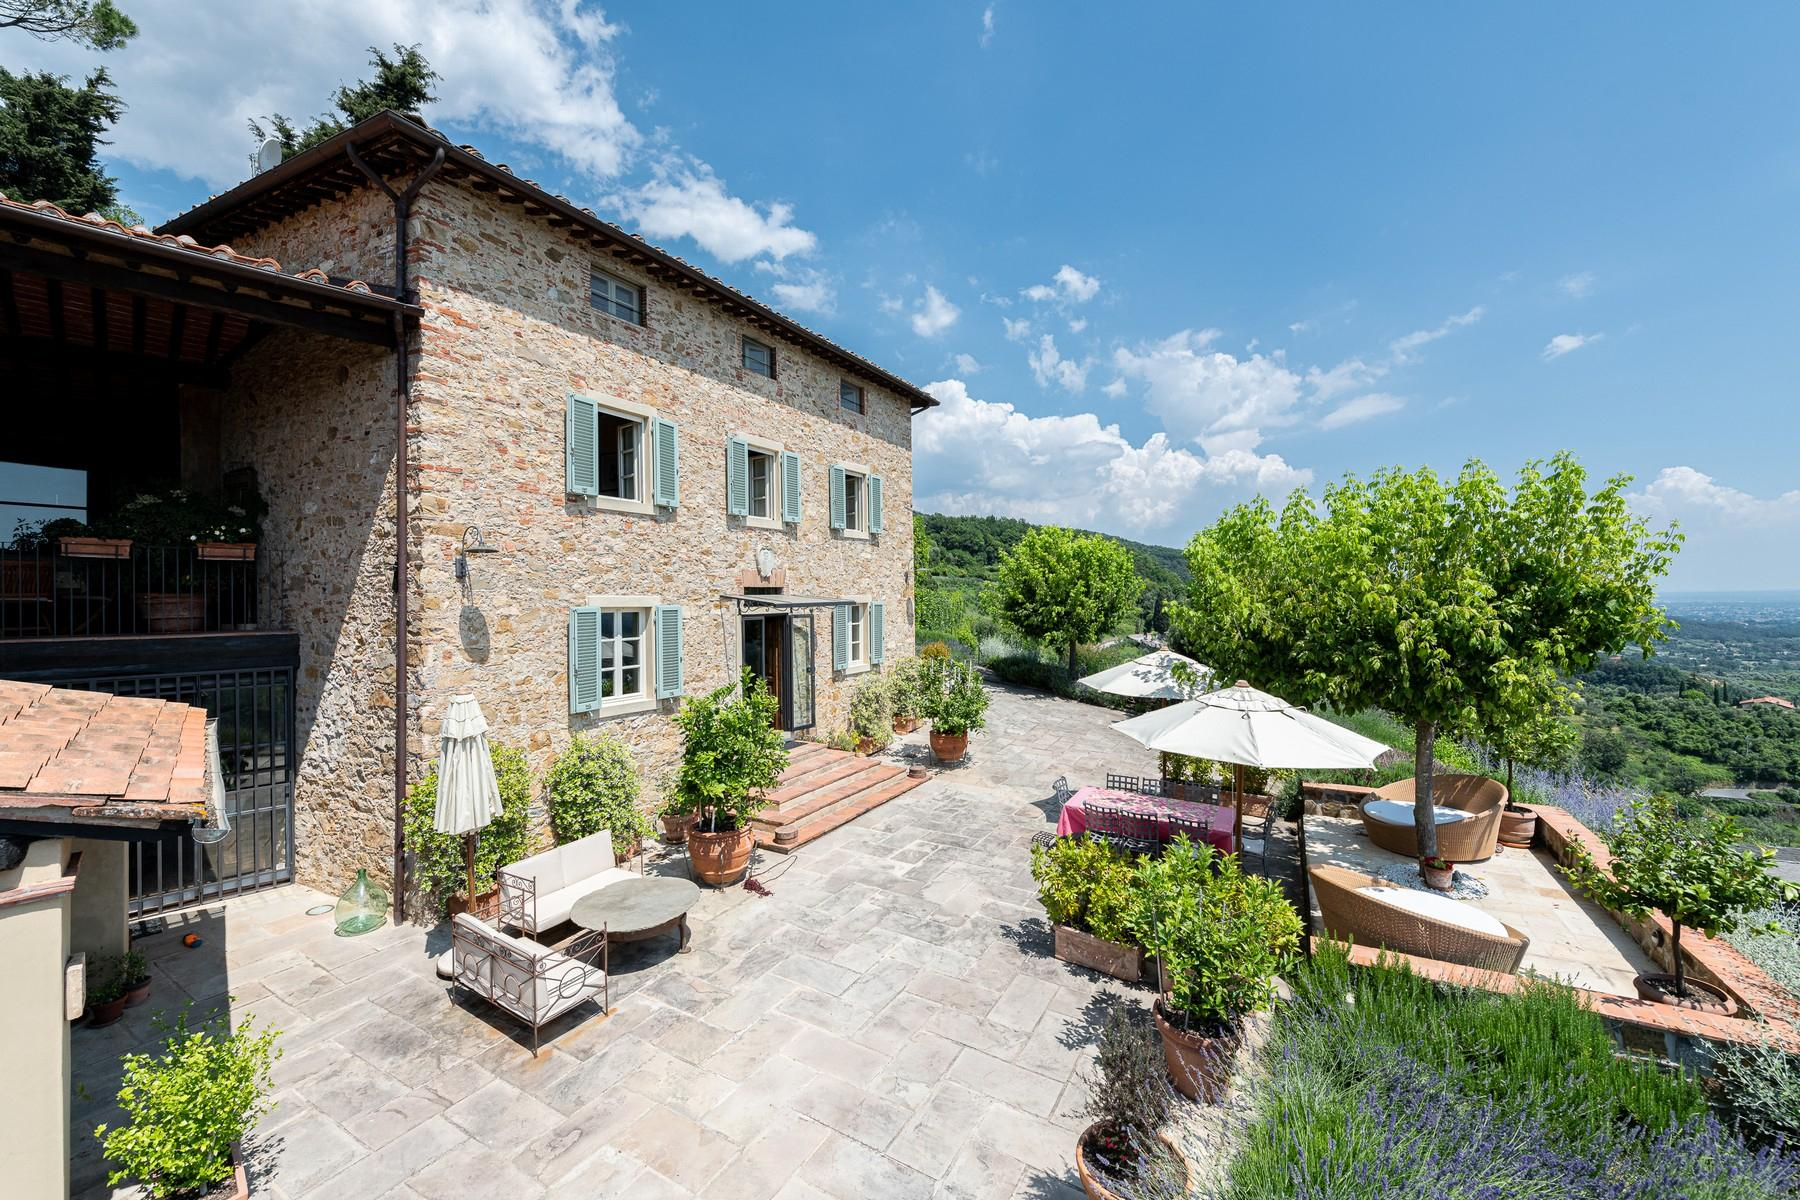 Magical farmhouse with stunning views on the hills of Lucca - 3